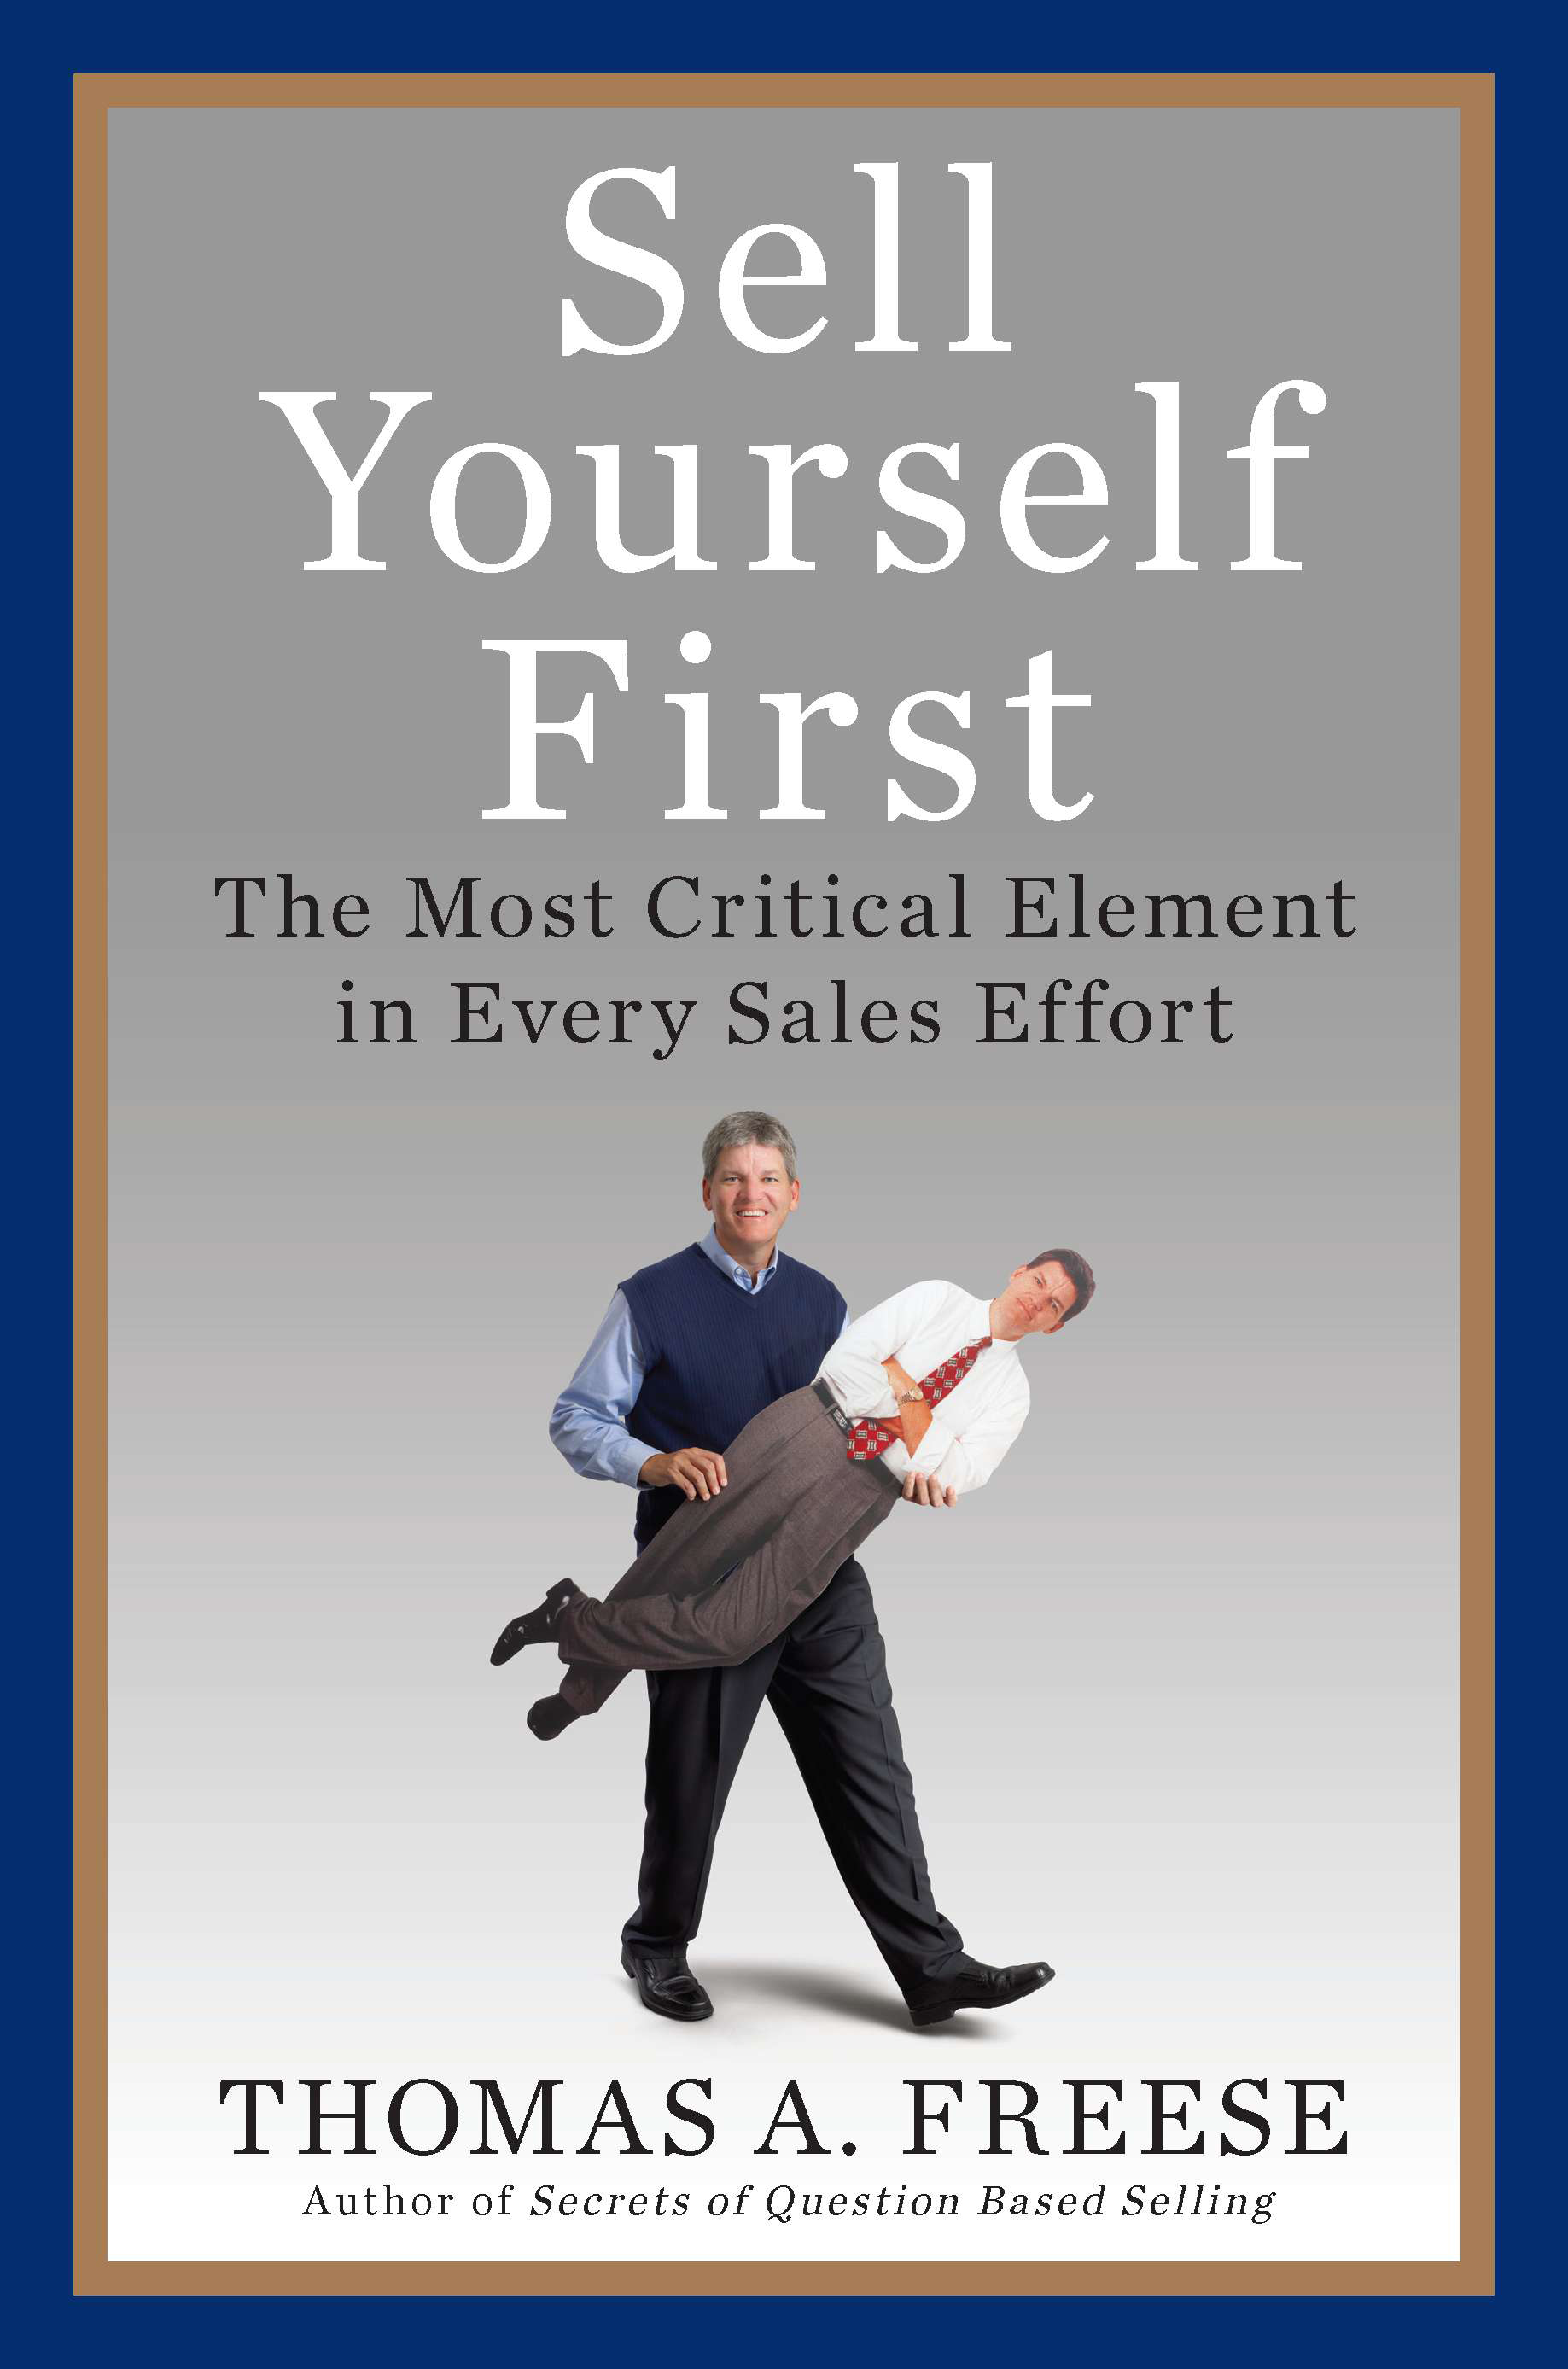 Sell Yourself First By: Thomas A. Freese